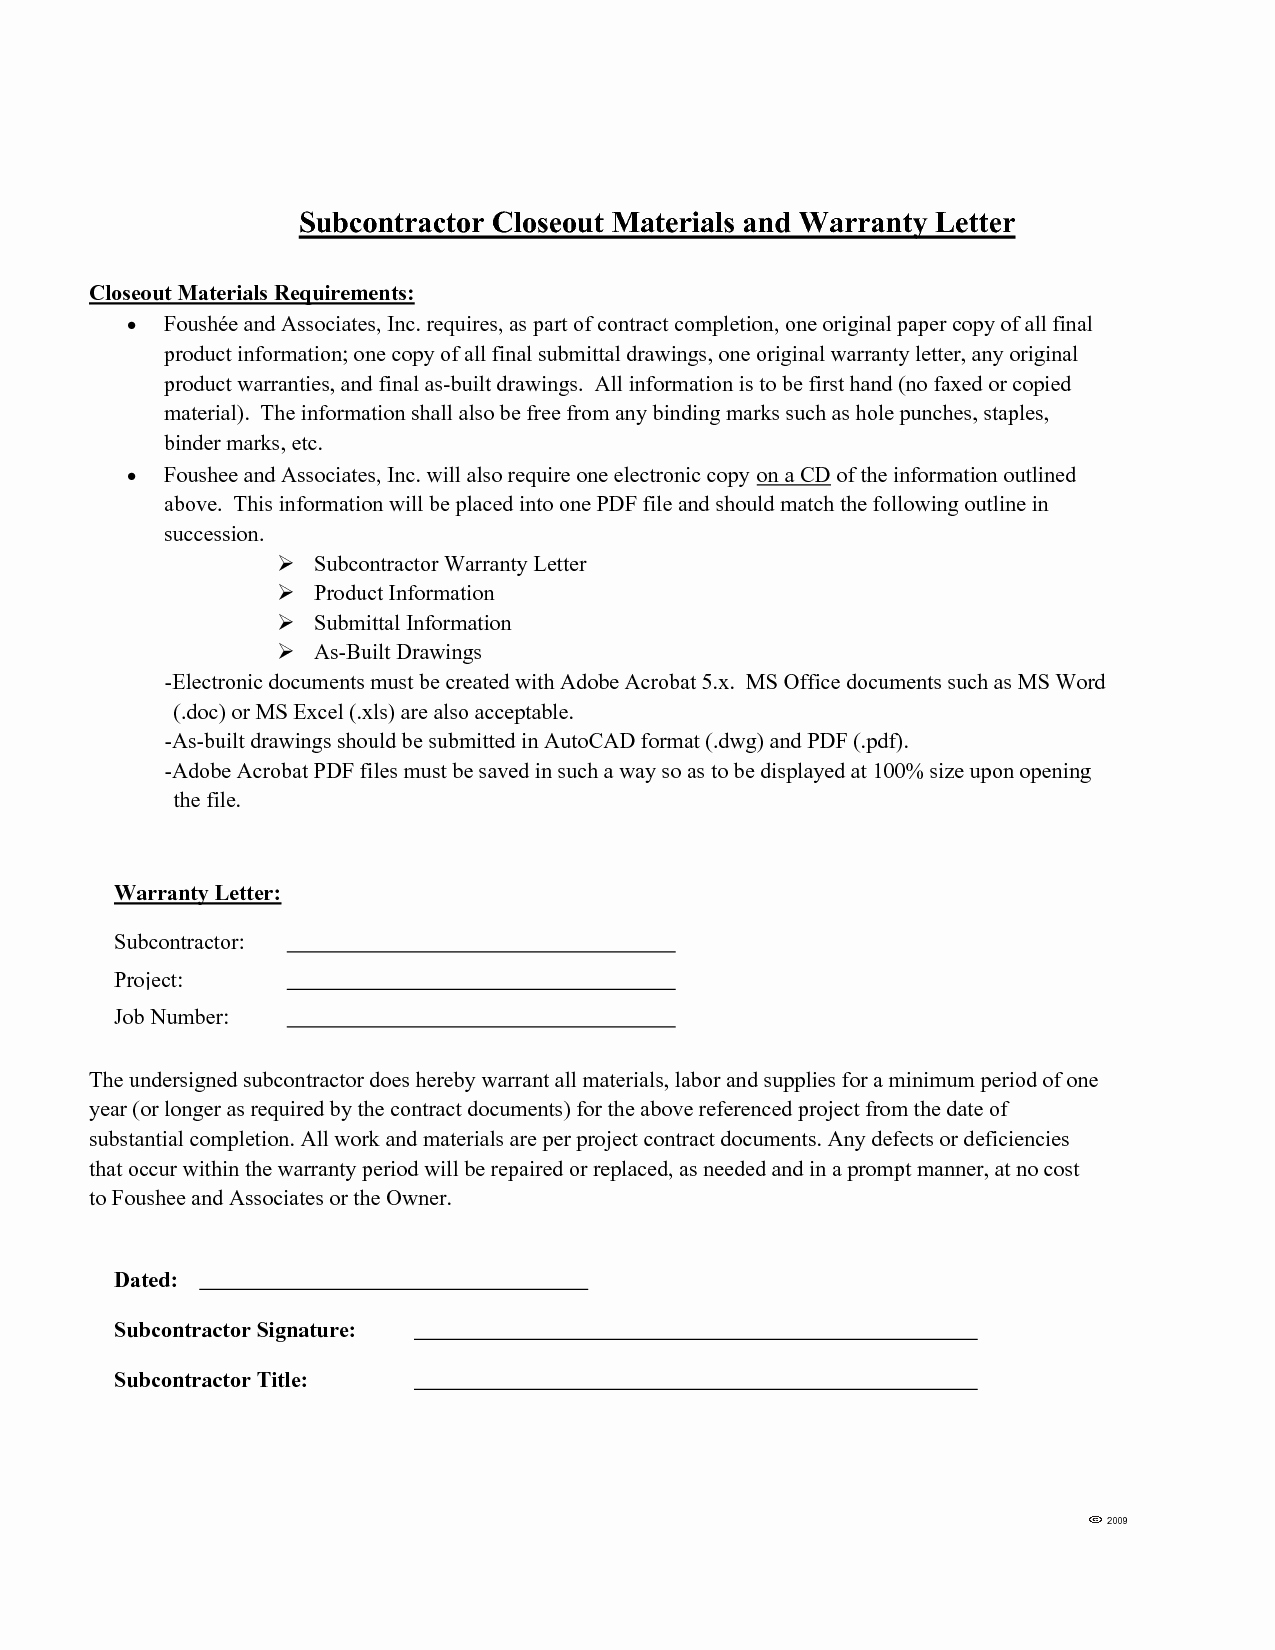 Warranty Letter General Contractor Awesome Letter Warranty Free Printable Documents